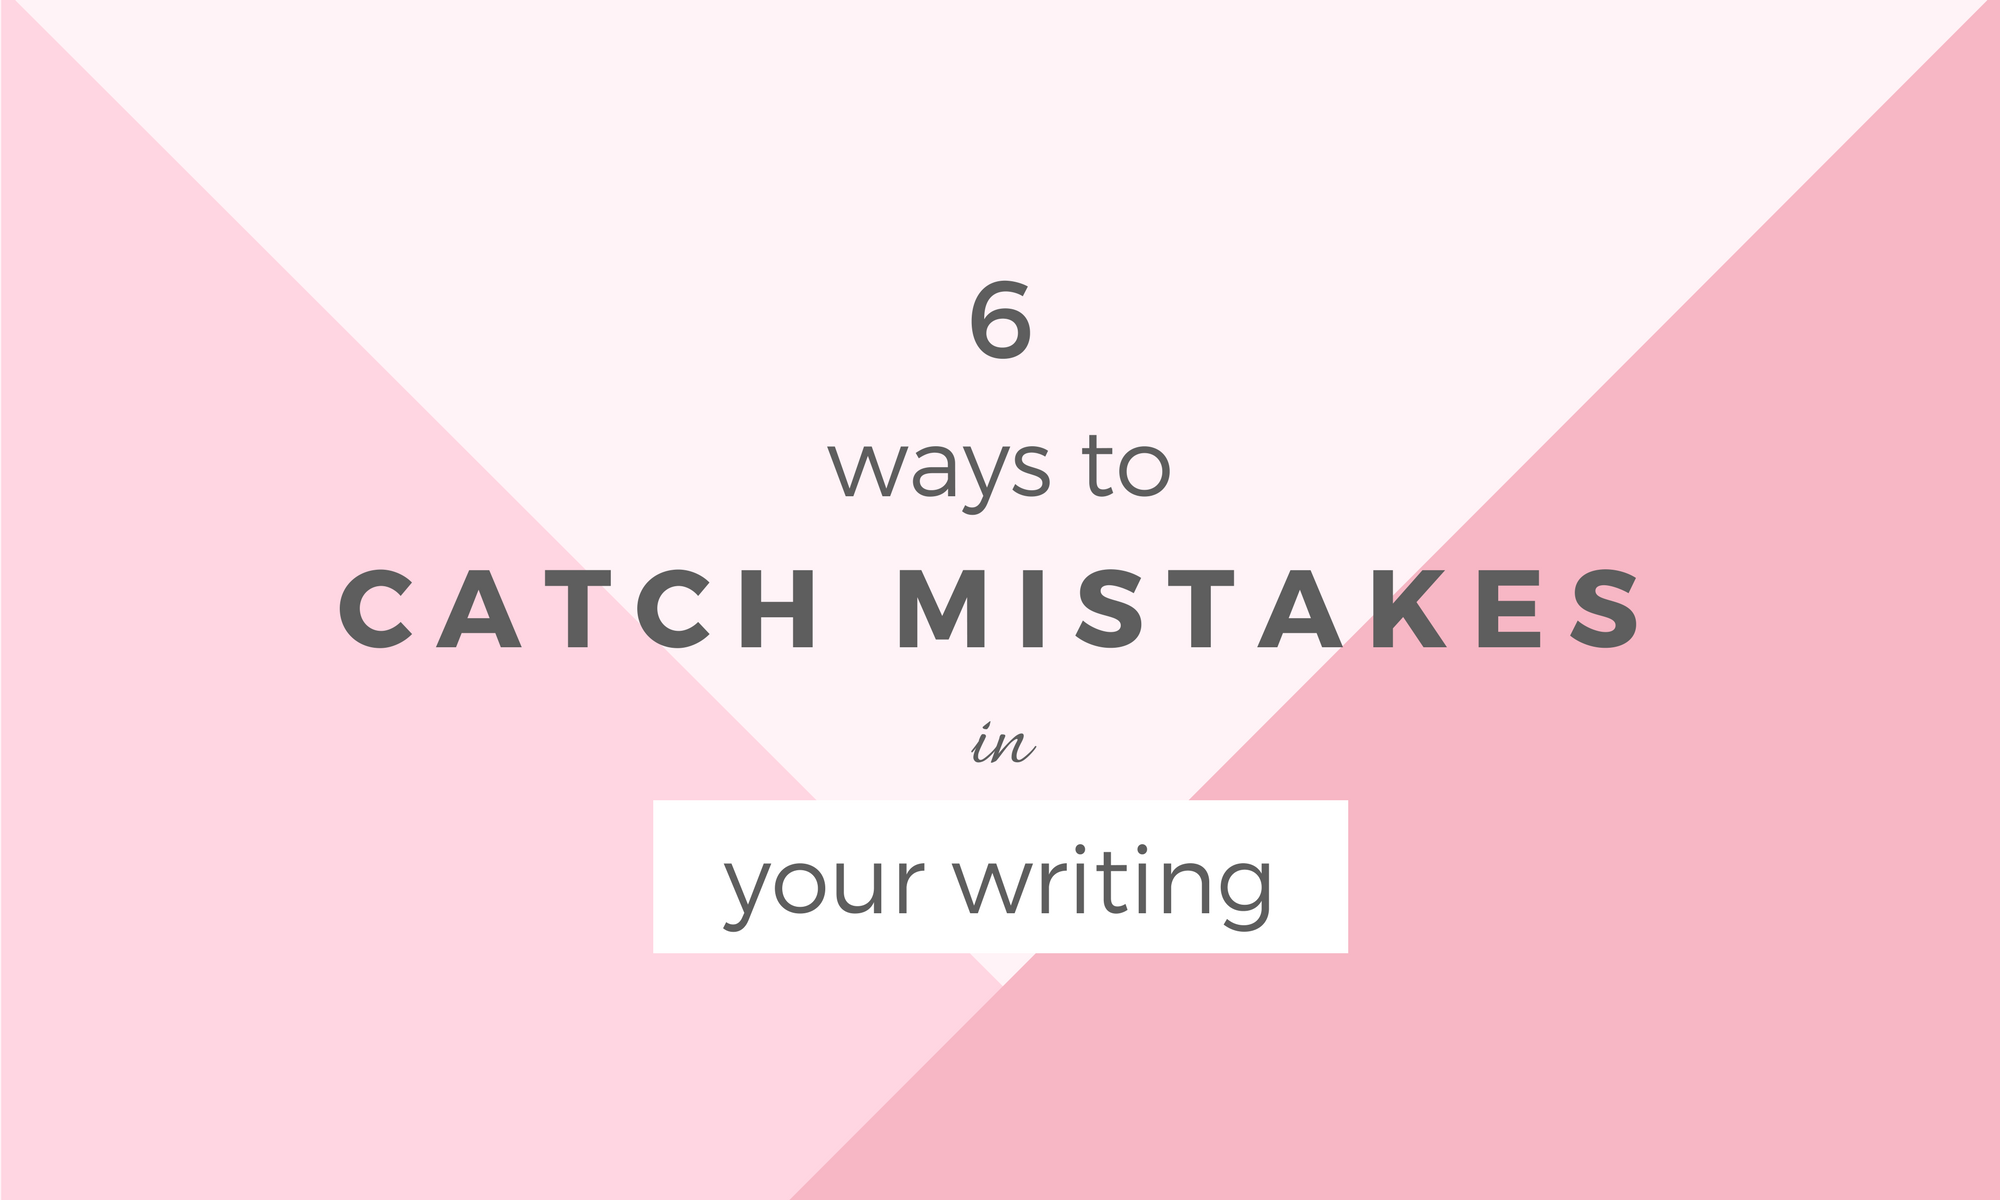 6 ways to catch mistakes in your writing